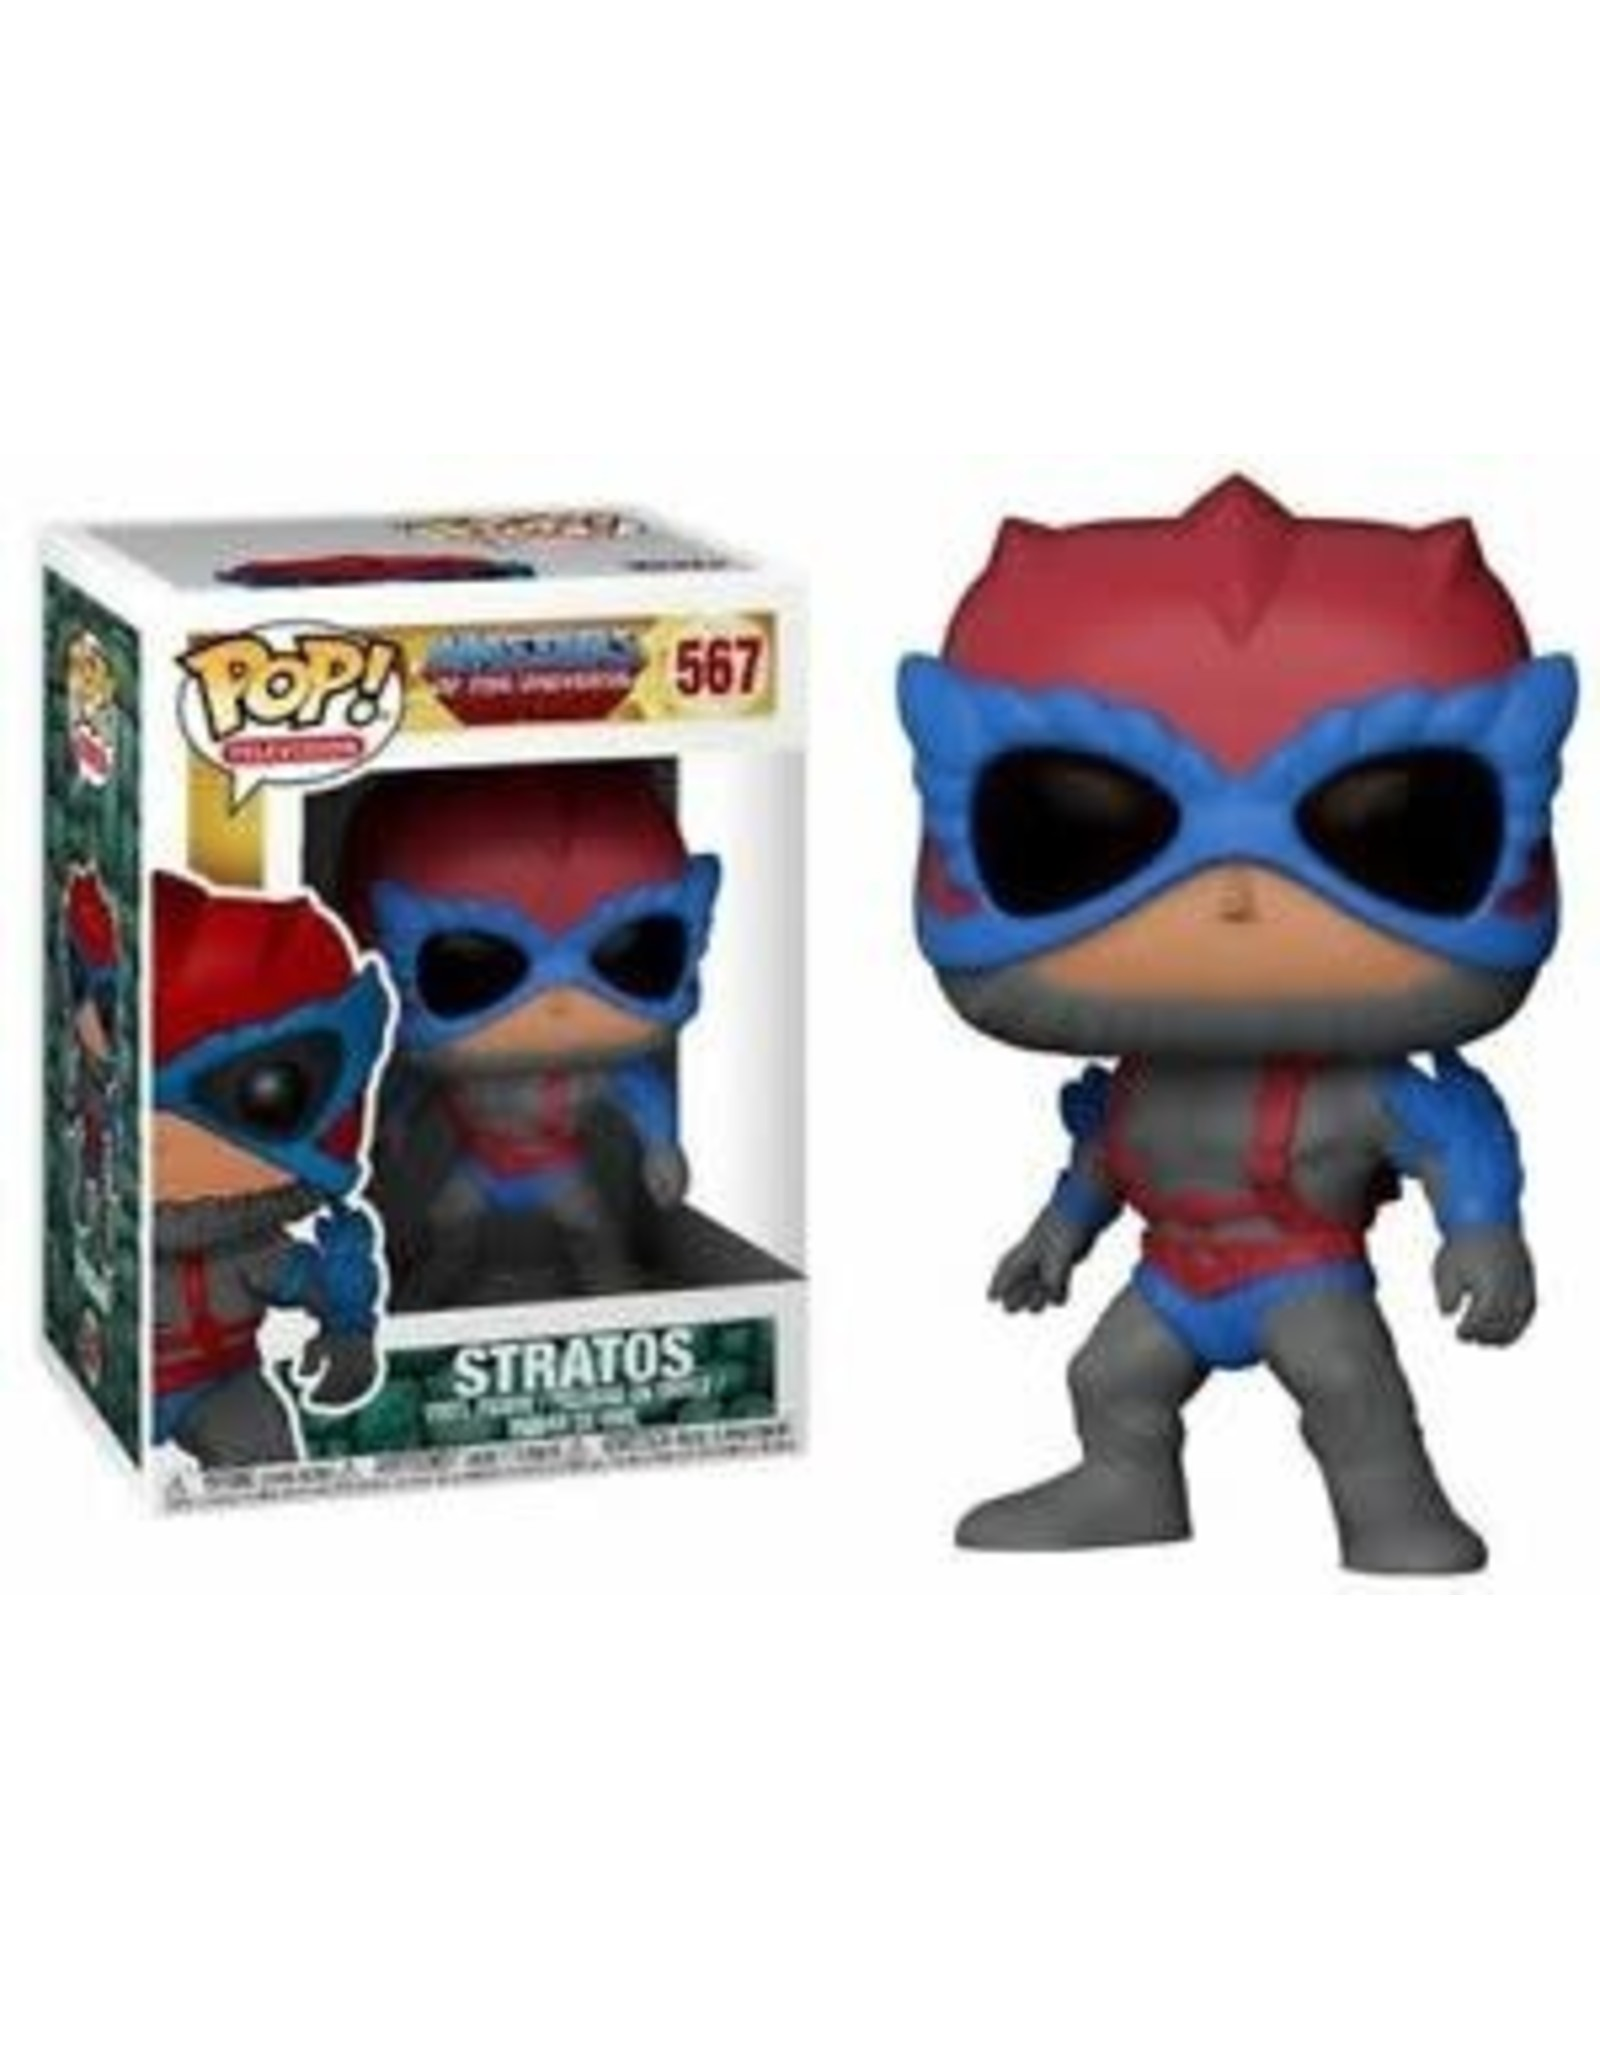 Funko Pop! Funko Pop! Television nr567 Masters of the Universe - Stratos